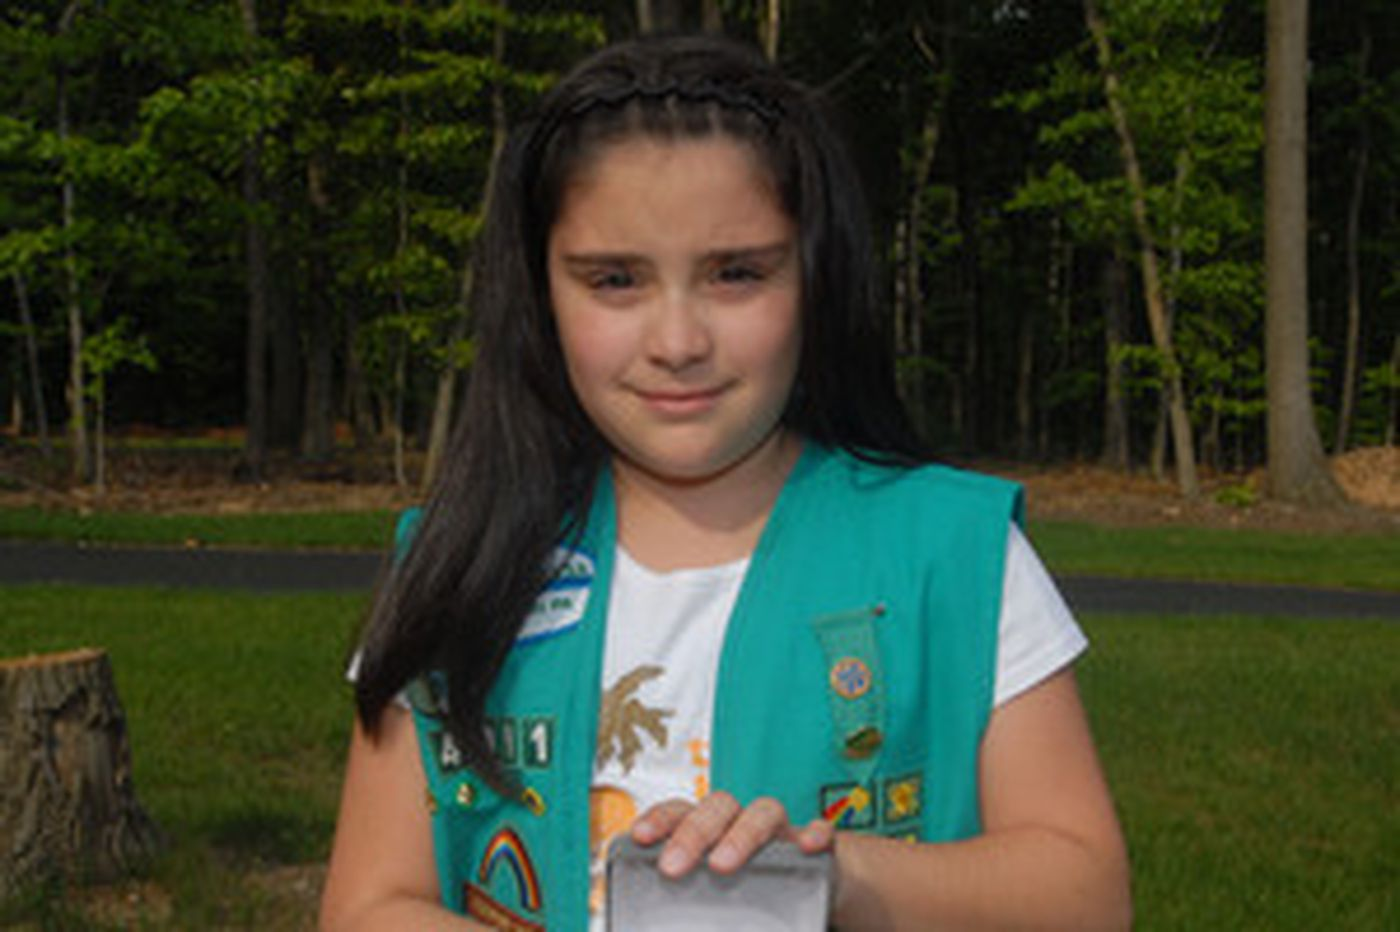 She warned neighbors about a fire menacing their home. Special award for a girl, 10, who put duty above fear